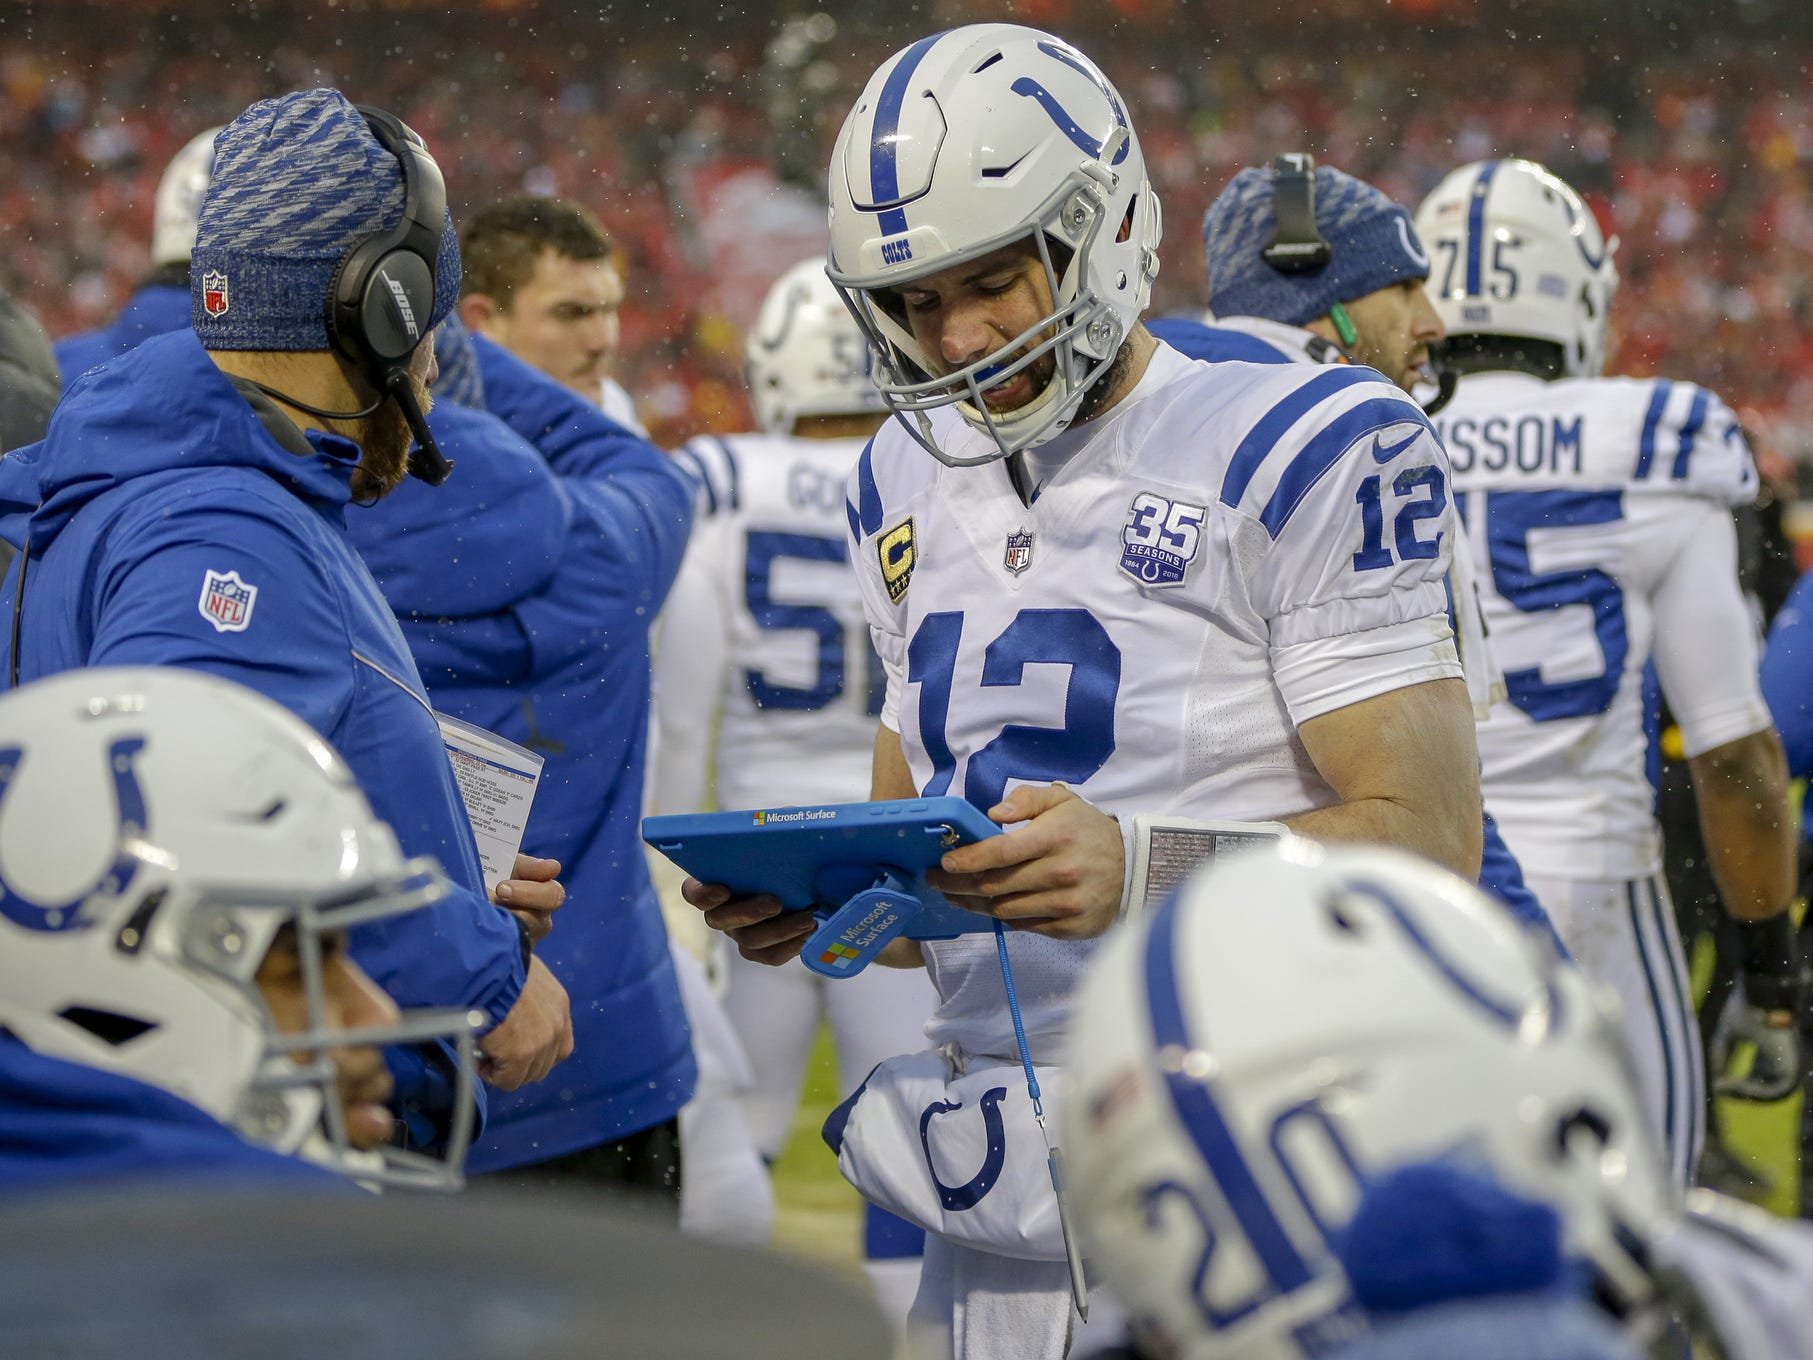 Indianapolis Colts quarterback Andrew Luck (12) looks at a tablet after a three and out against the Kansas City Chiefs in the second quarter at Arrowhead Stadium in Kansas City, Mo., on Saturday, Jan. 12, 2019.